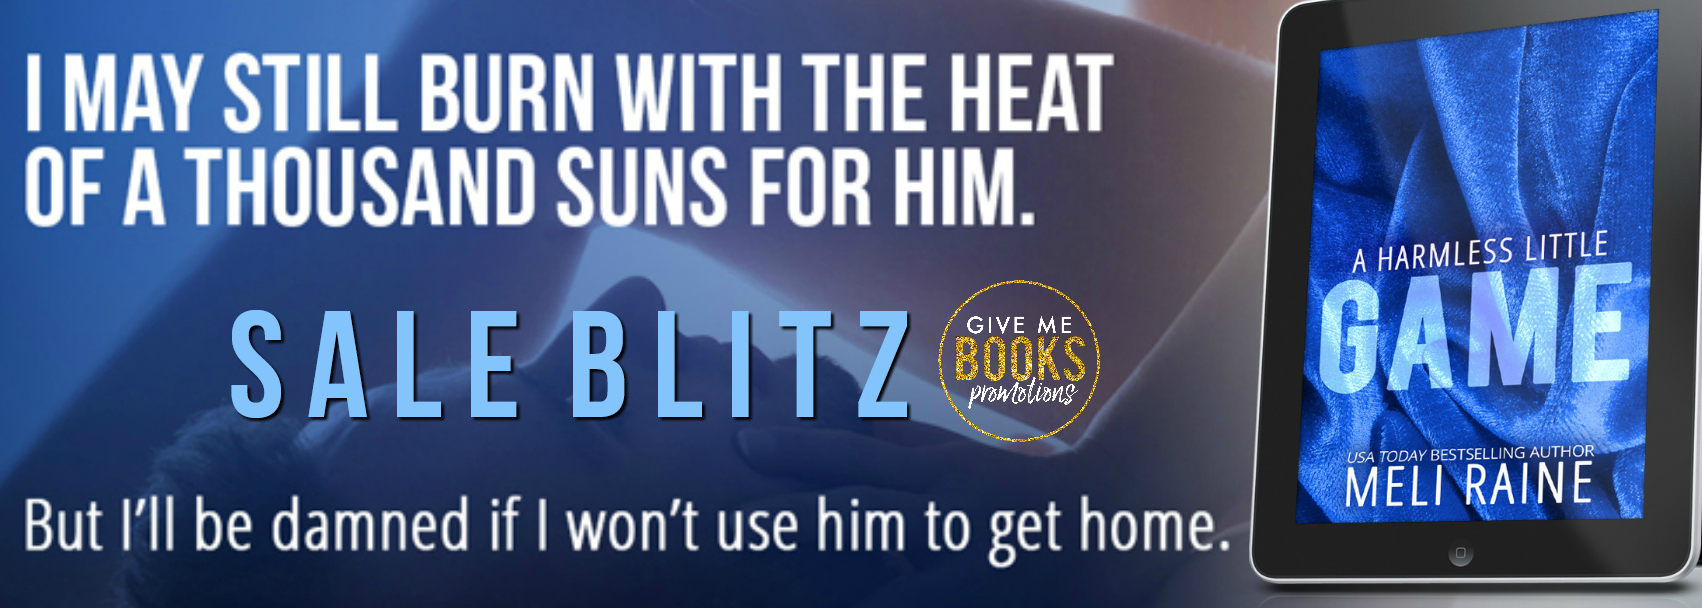 Sale Blitz: A Harmless Little Game by Meli Raine